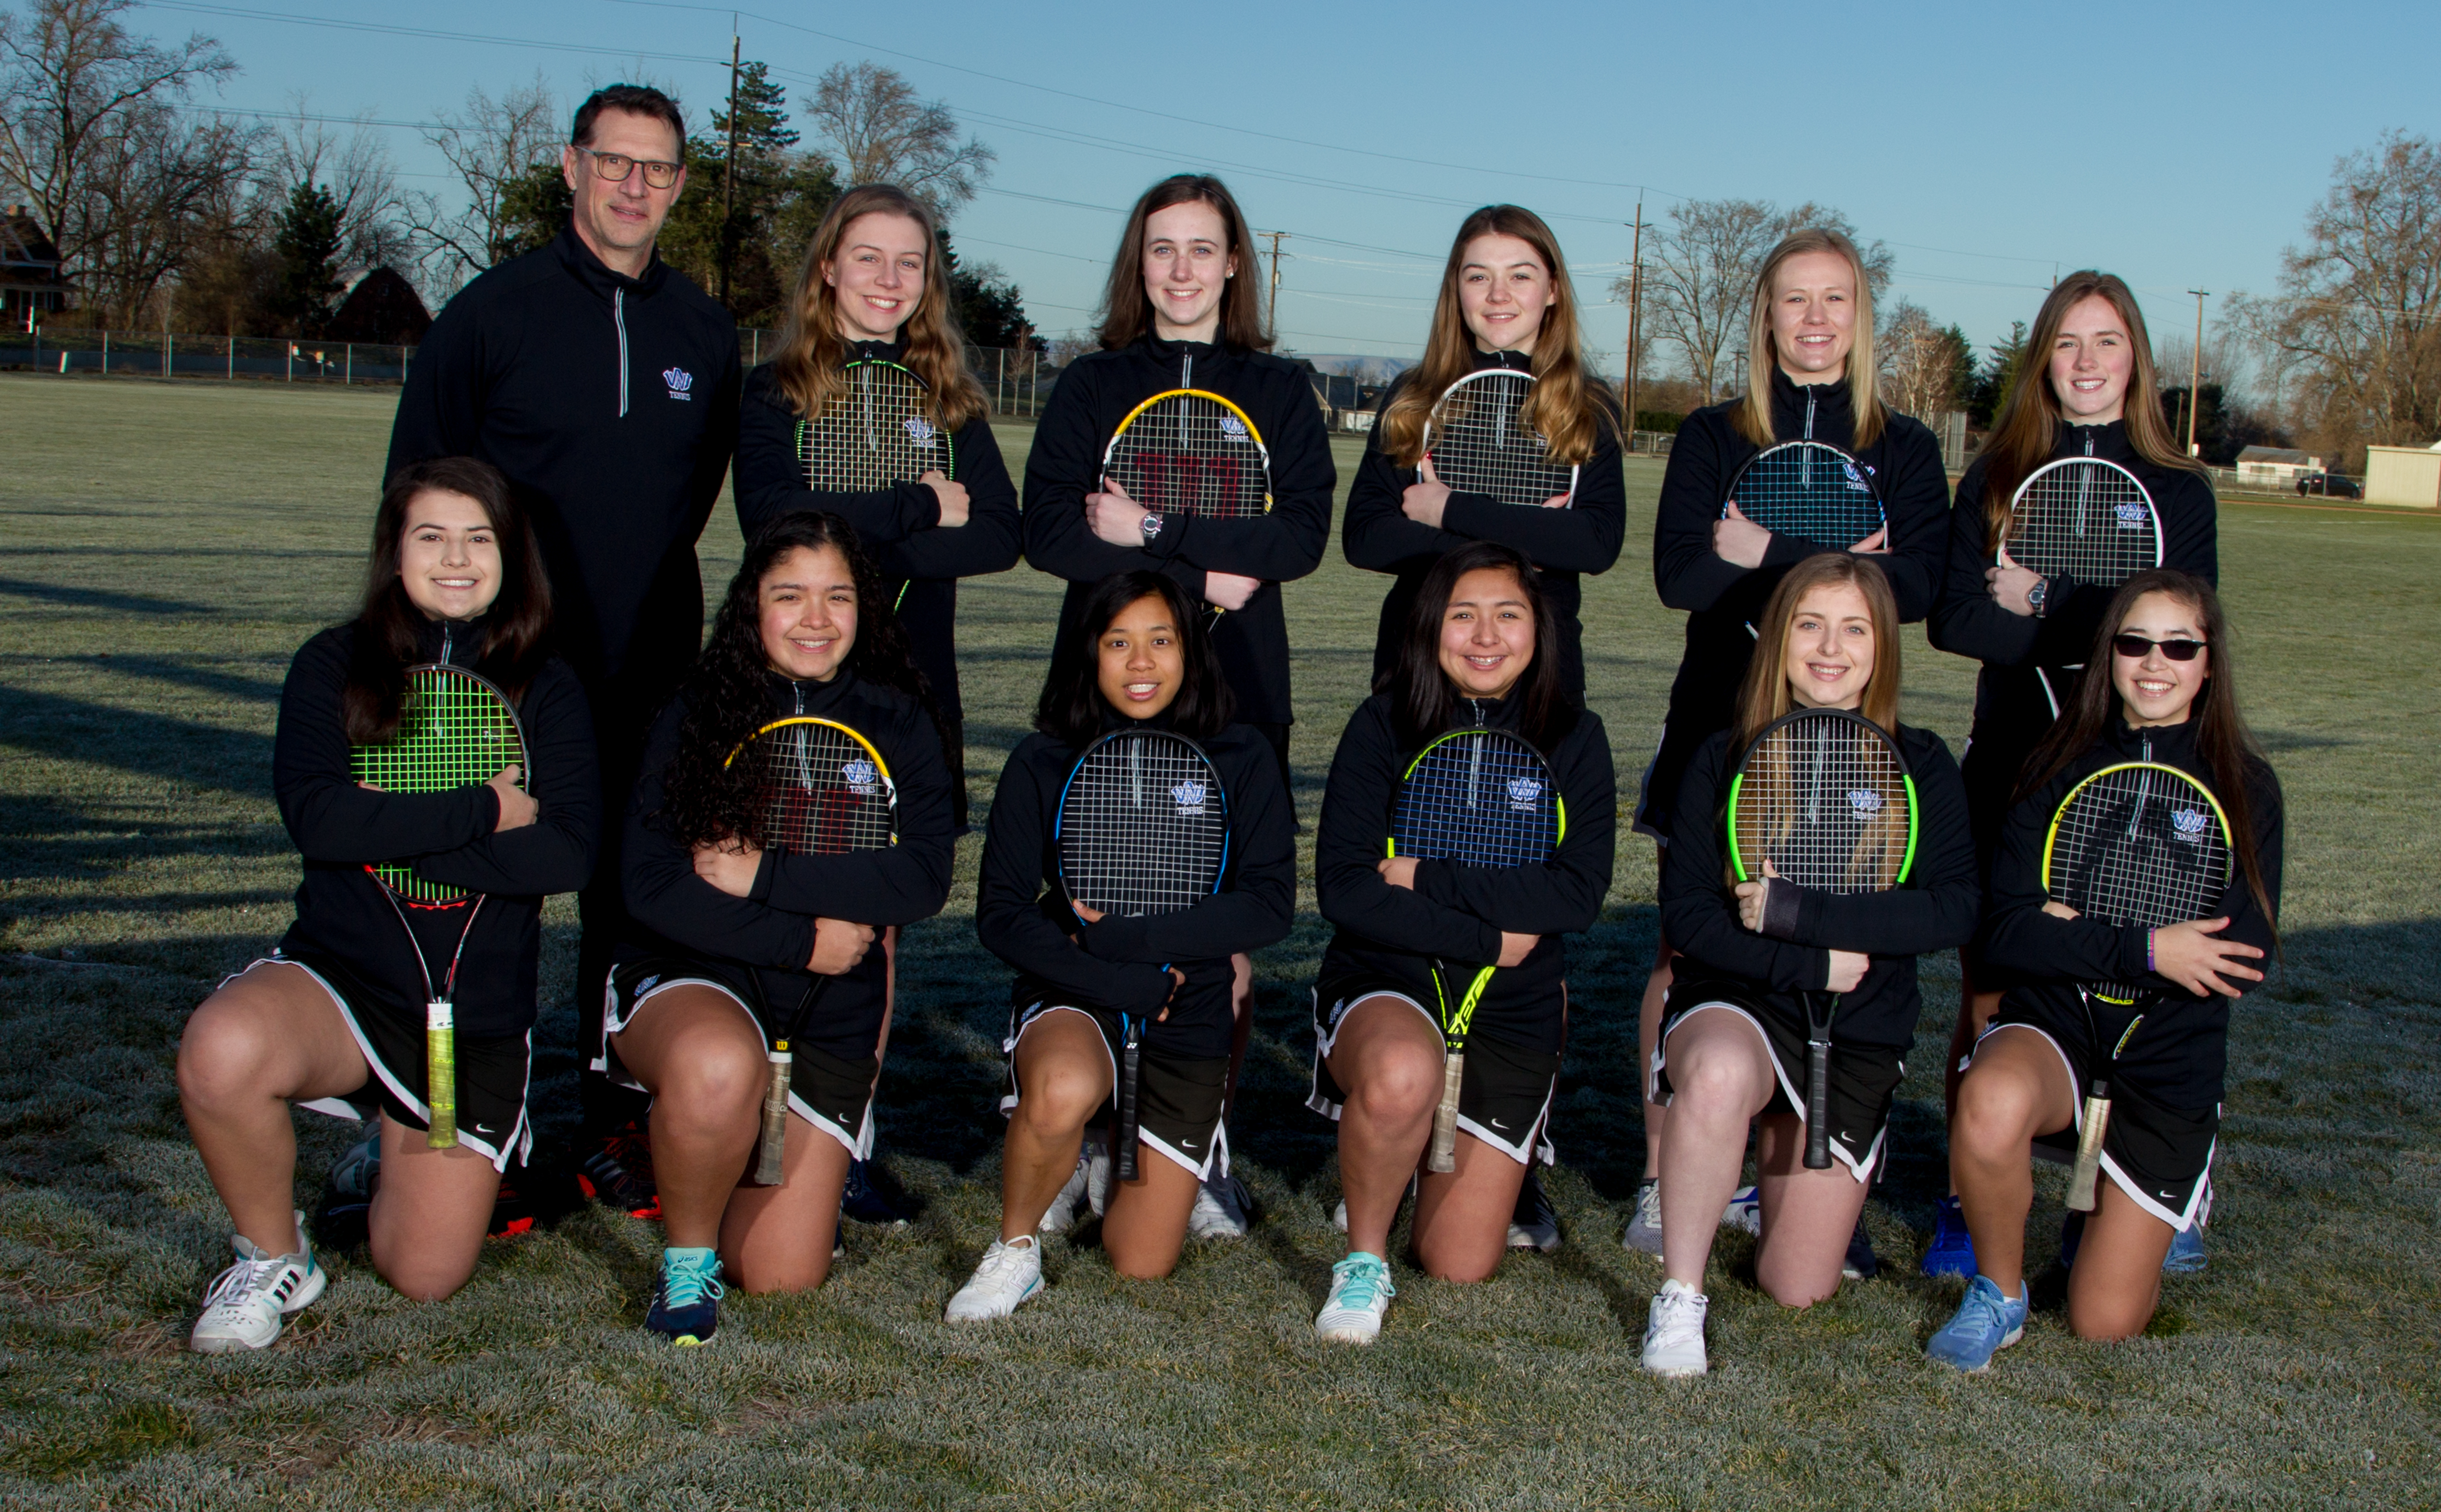 images/athletics/Tennis/2018_Girls_Tennis_Varsity_.jpg